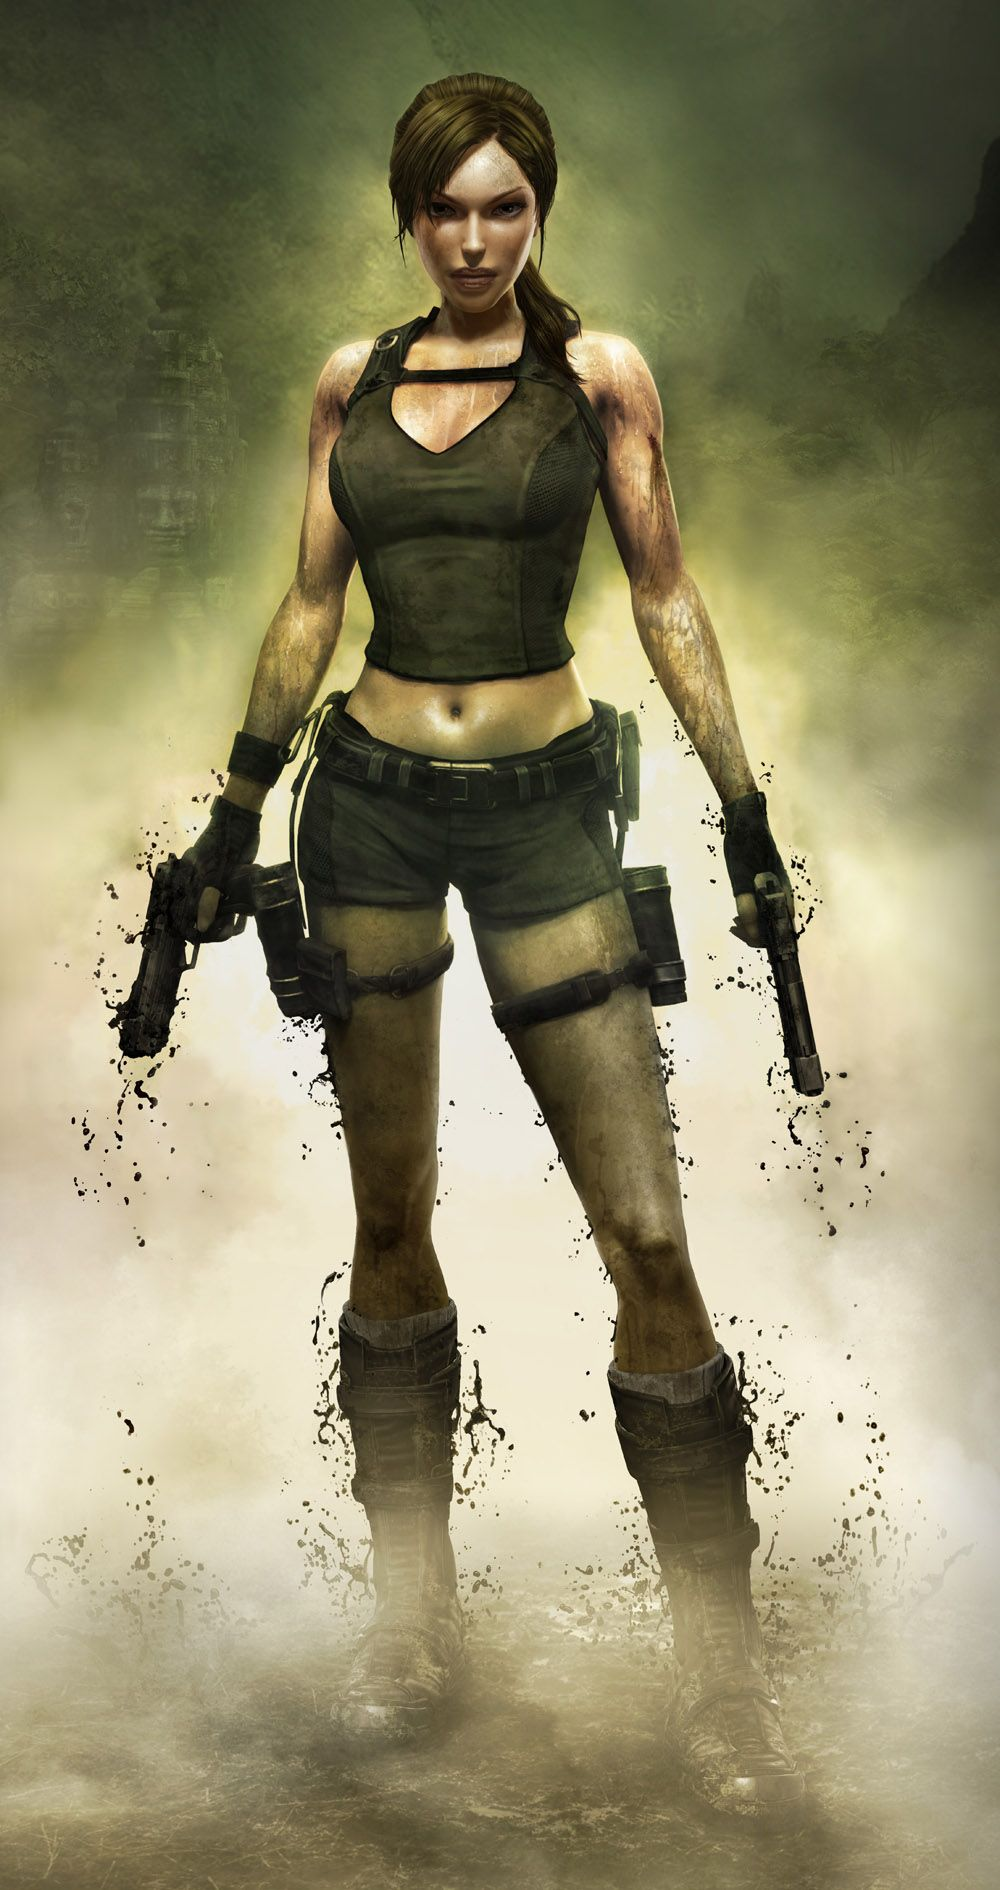 Lara Croft of Tomb Raider